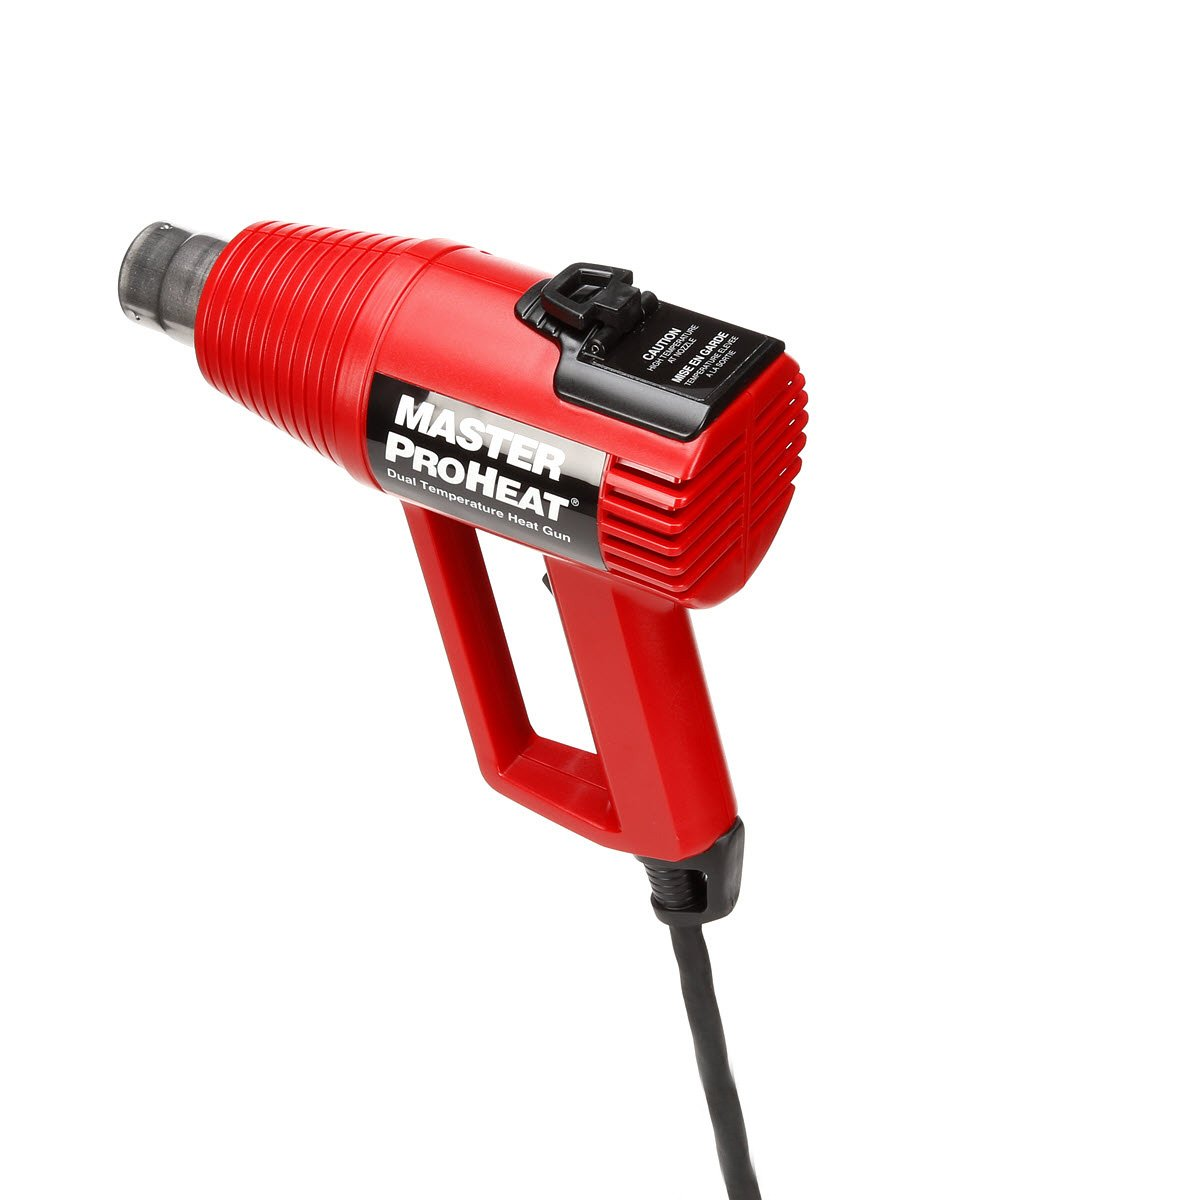 255409bca08 Master Appliance Proheat PH-1100 Dual Temp Professional Heat Gun ...